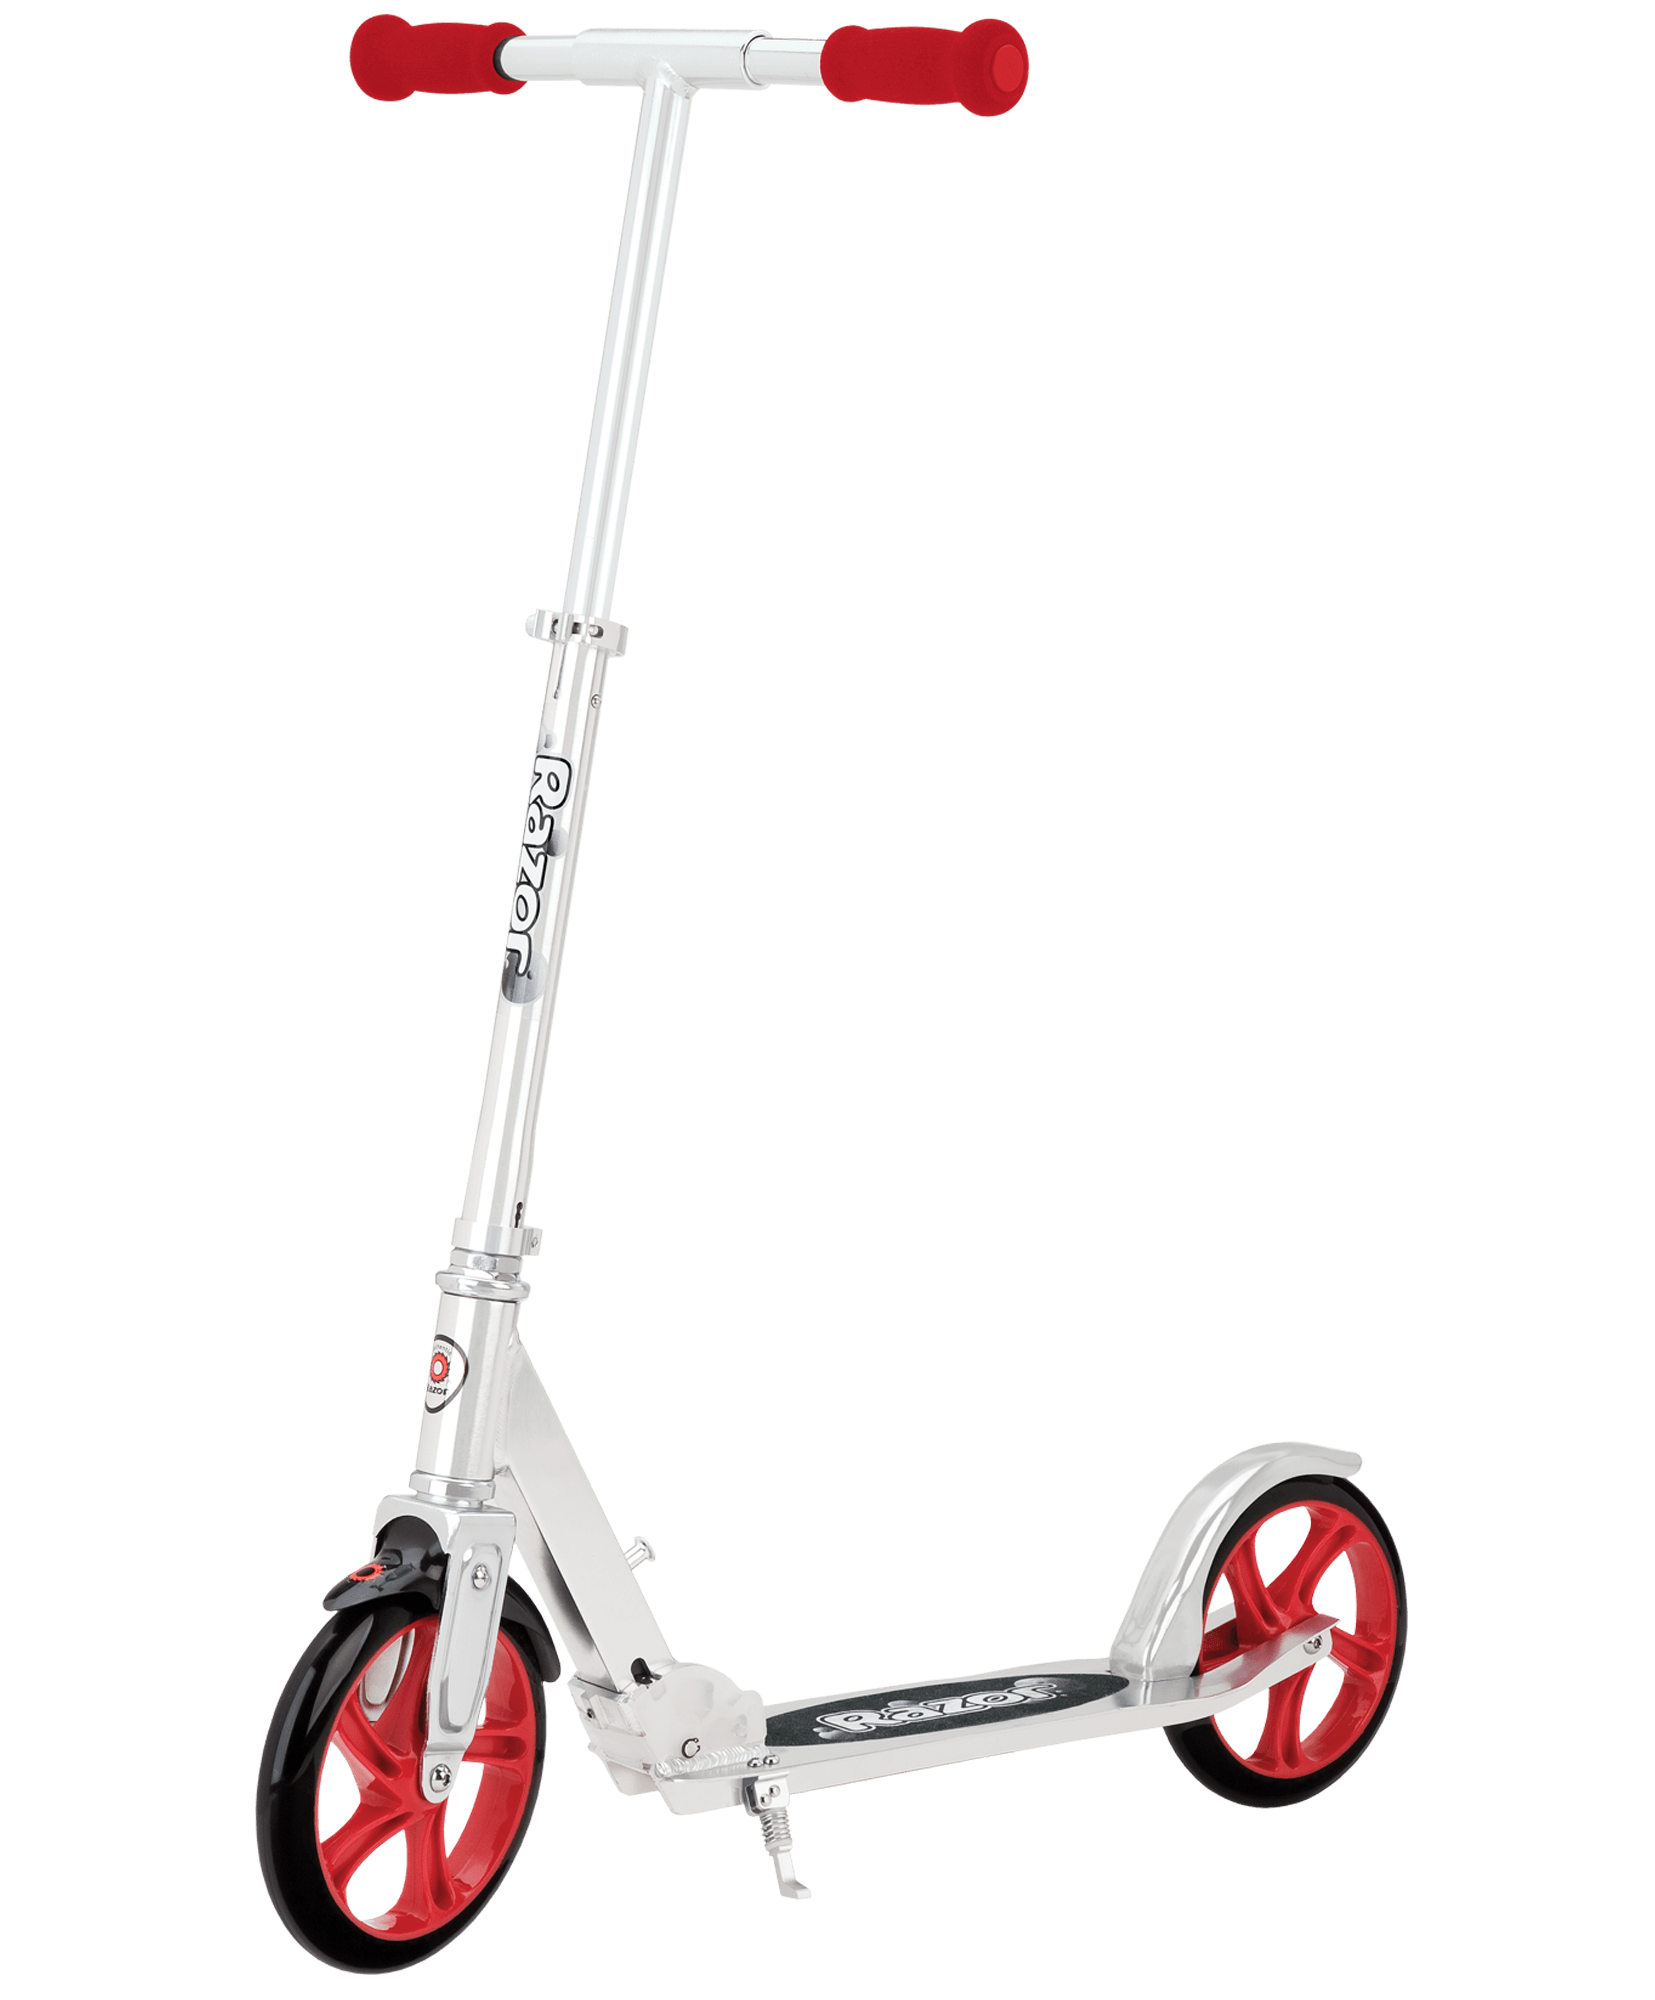 Wheel transparent scooter. A lux razor top